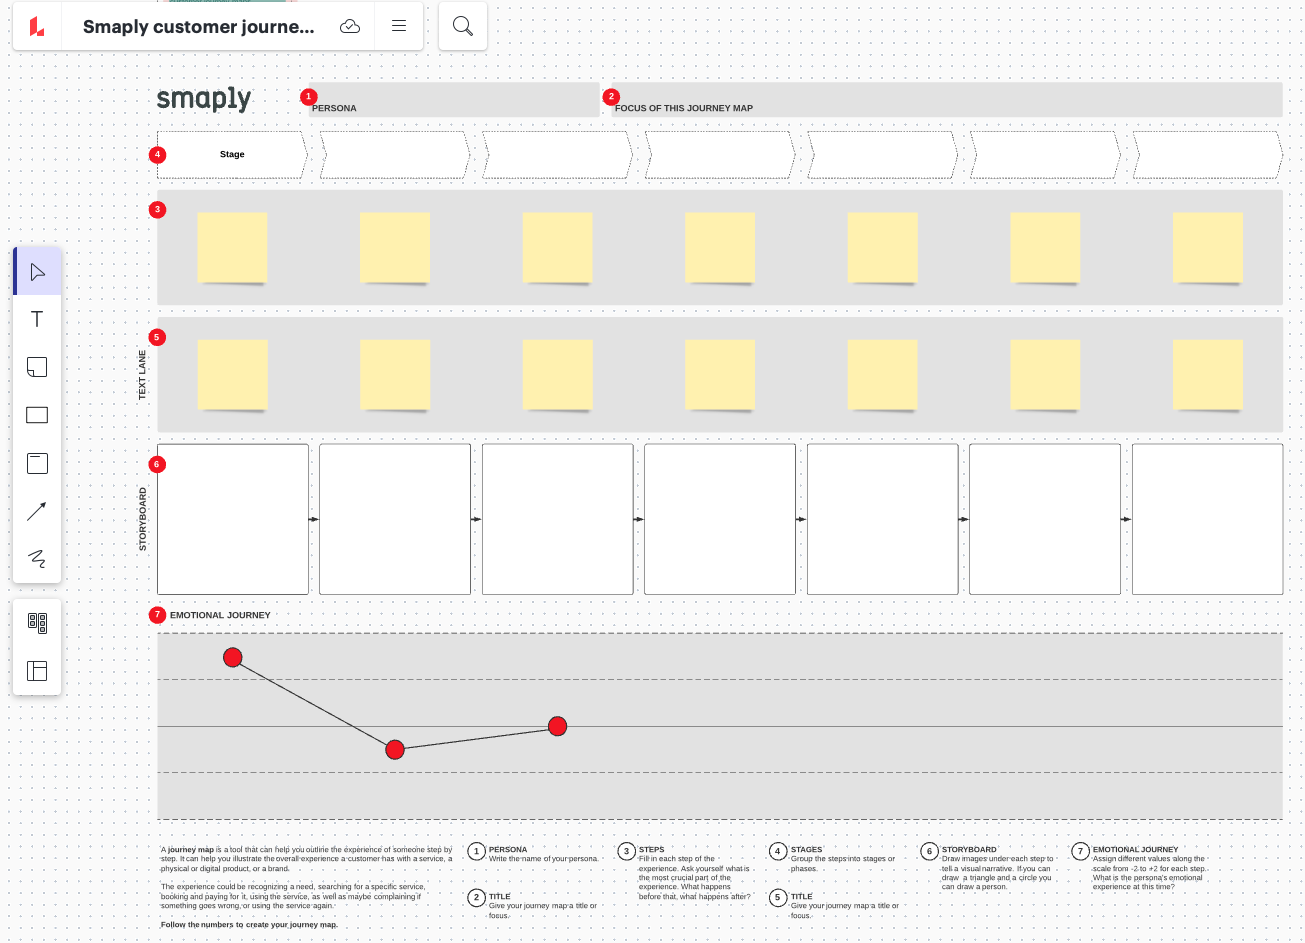 A template in Lucidchart to make it easy to import a journey map into Smaply.